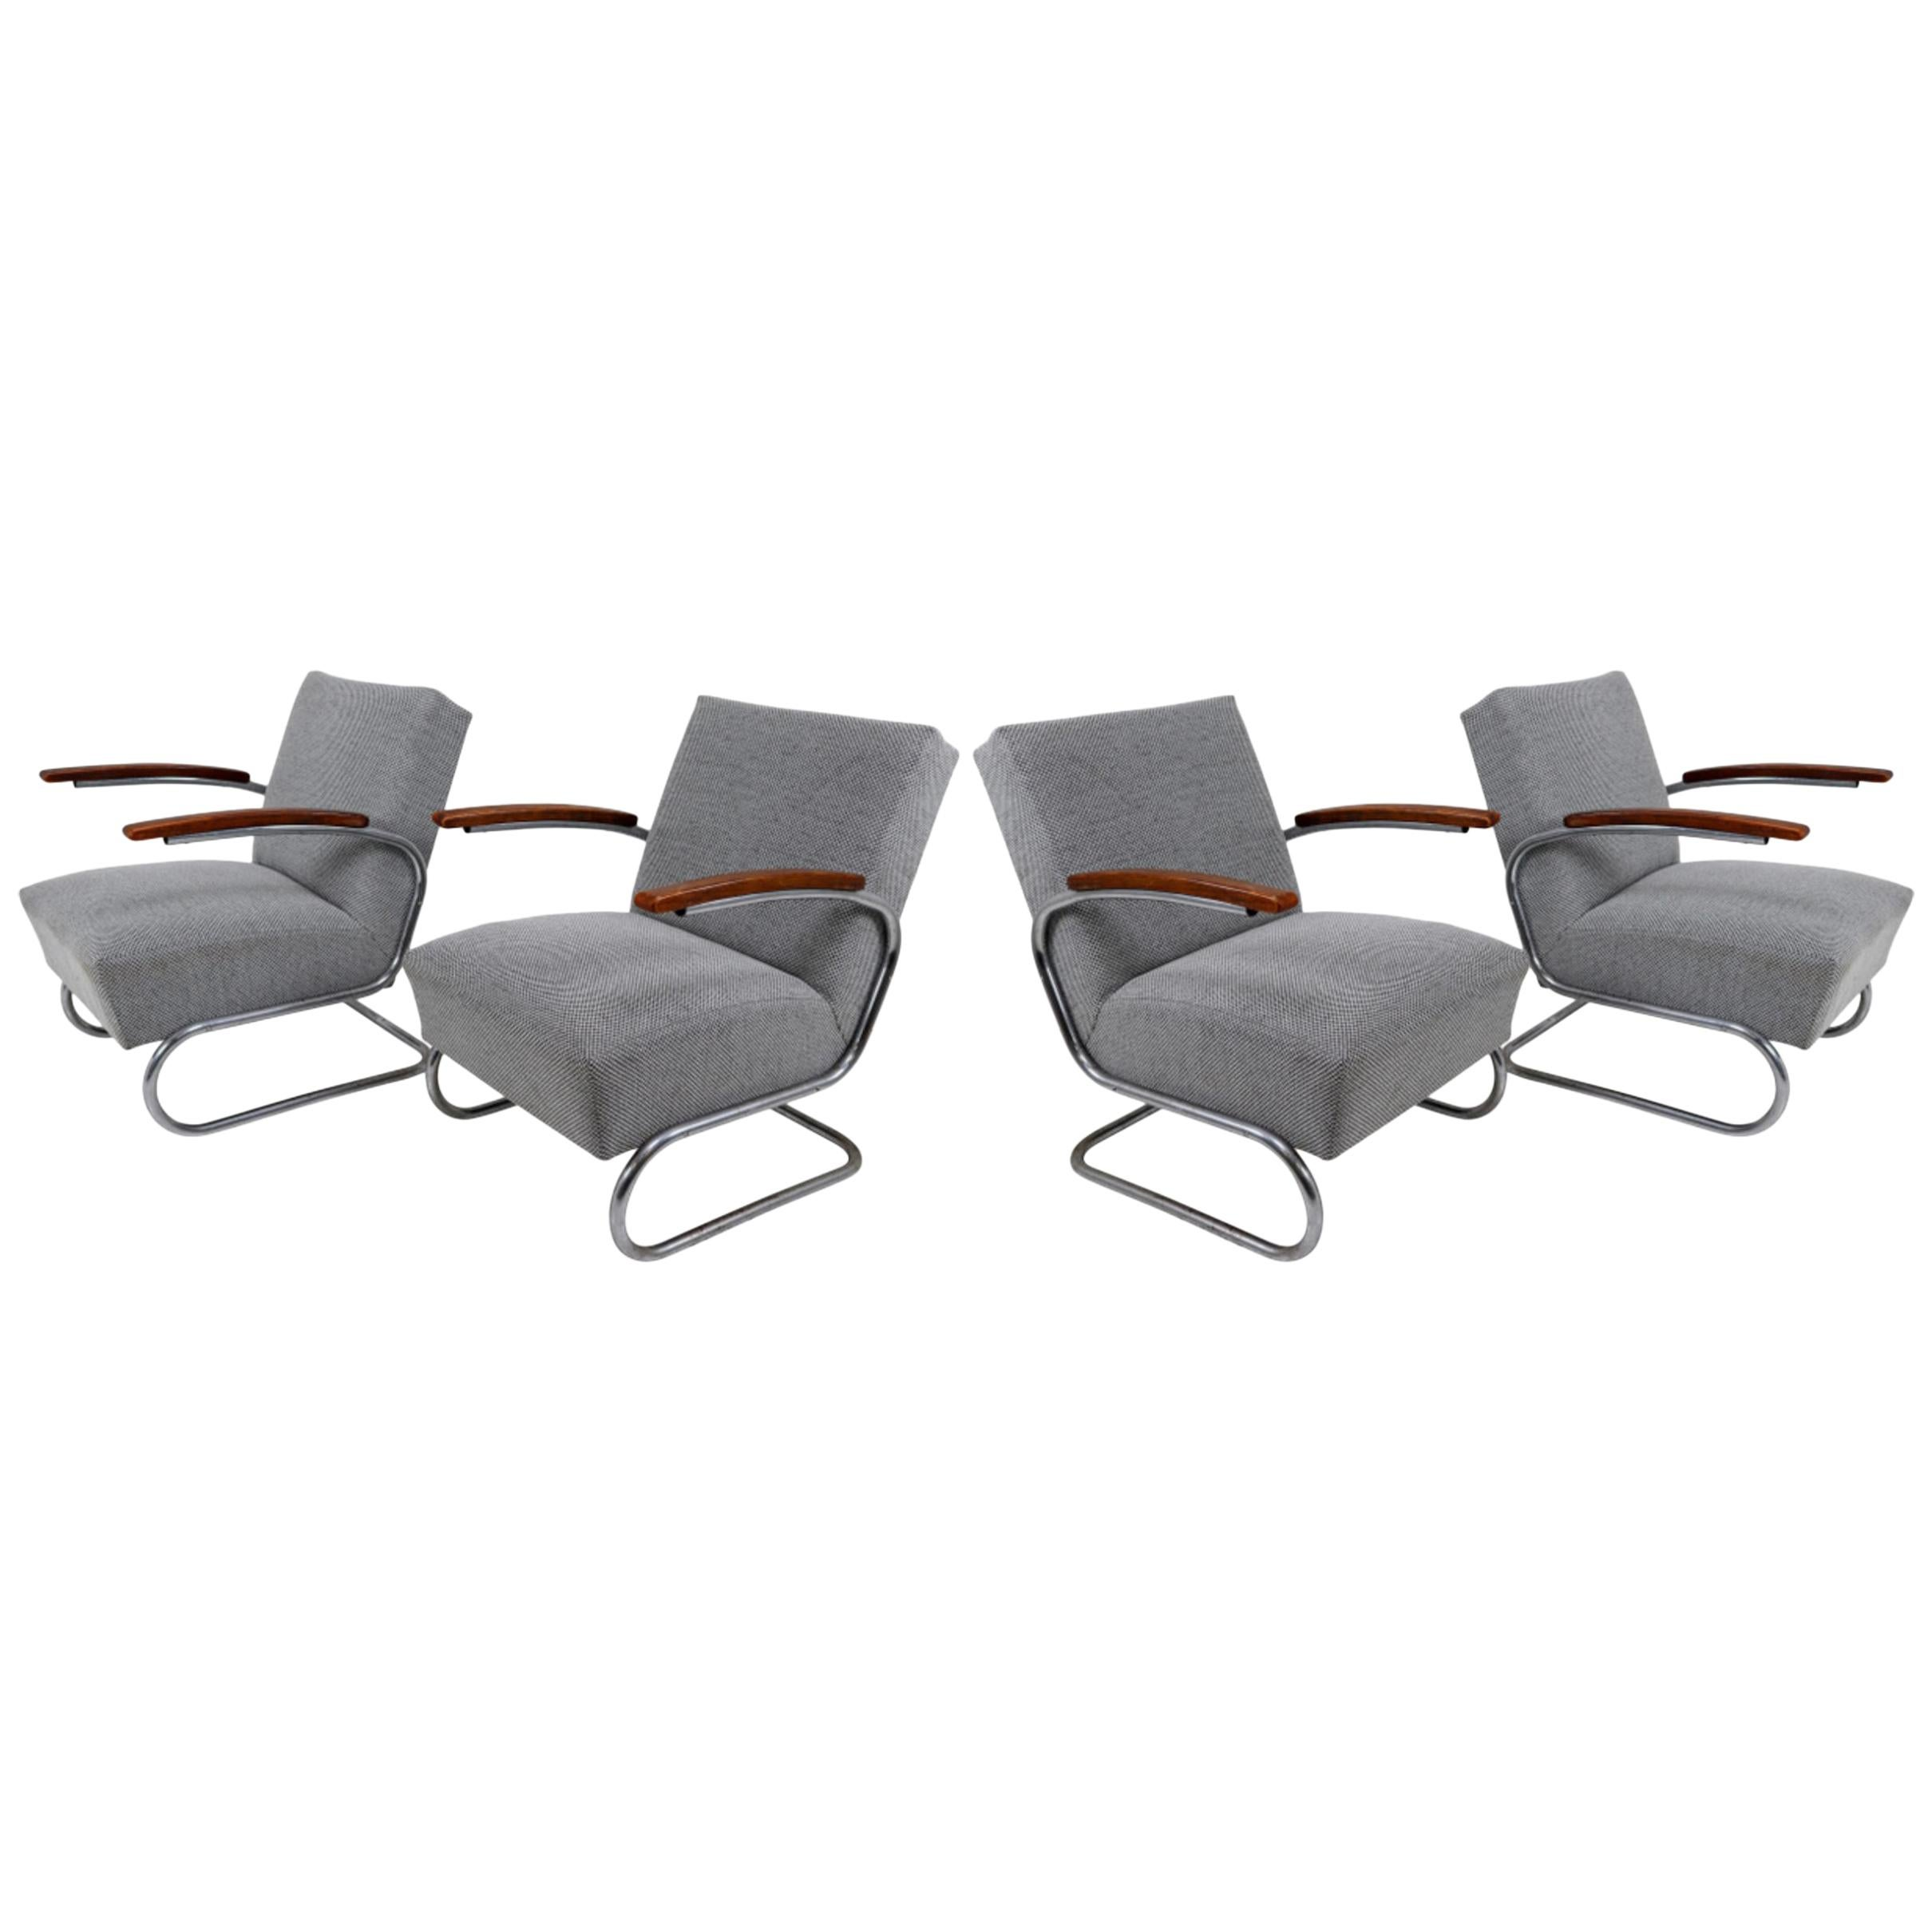 Model S411 Armchairs by Thonet circa 1930s Midcentury Bauhaus Period